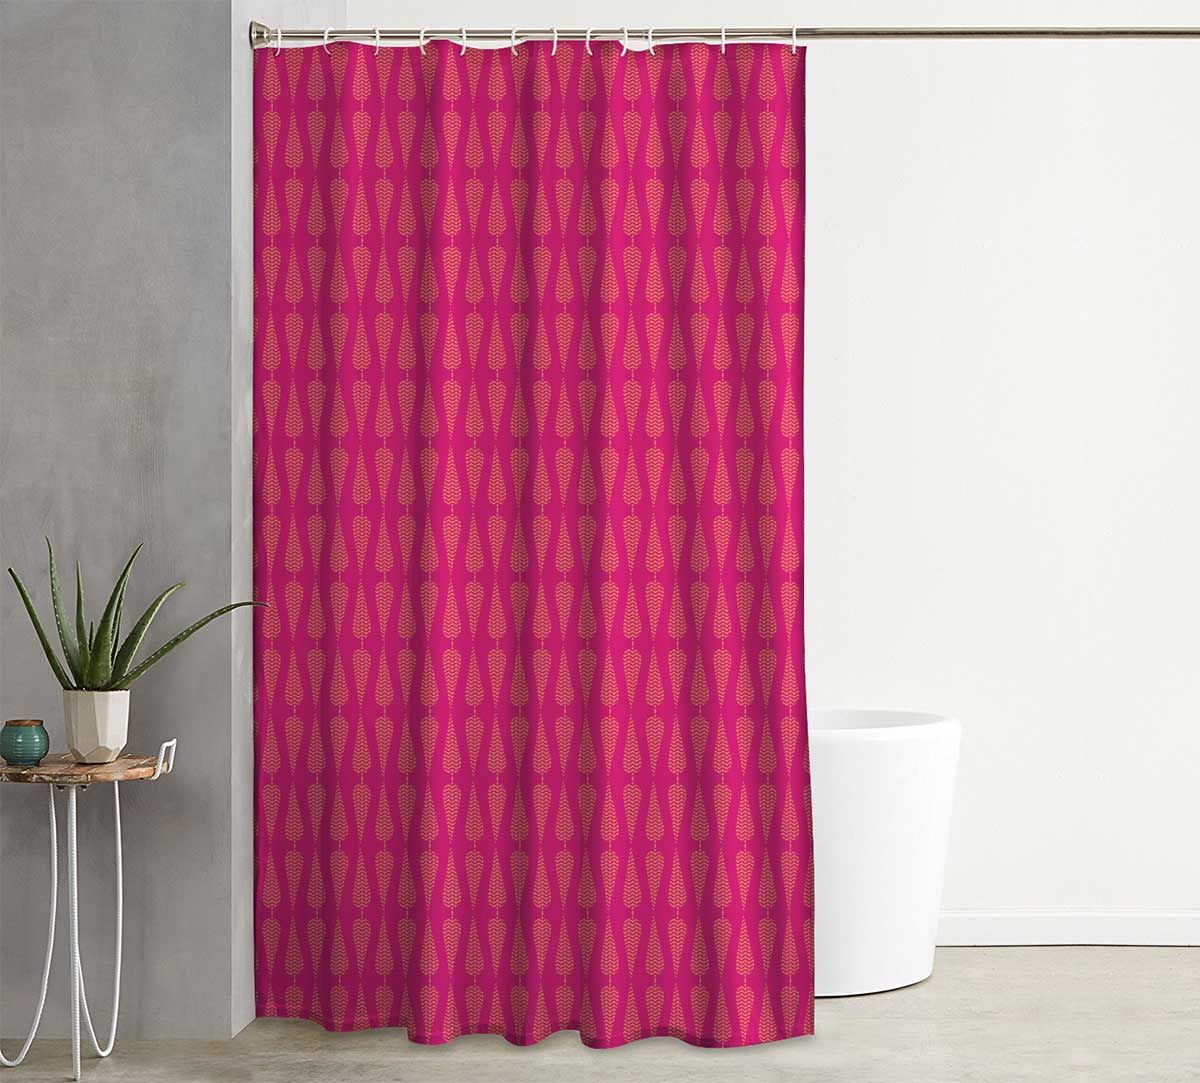 India Circus Conifer Spades Shower Curtain